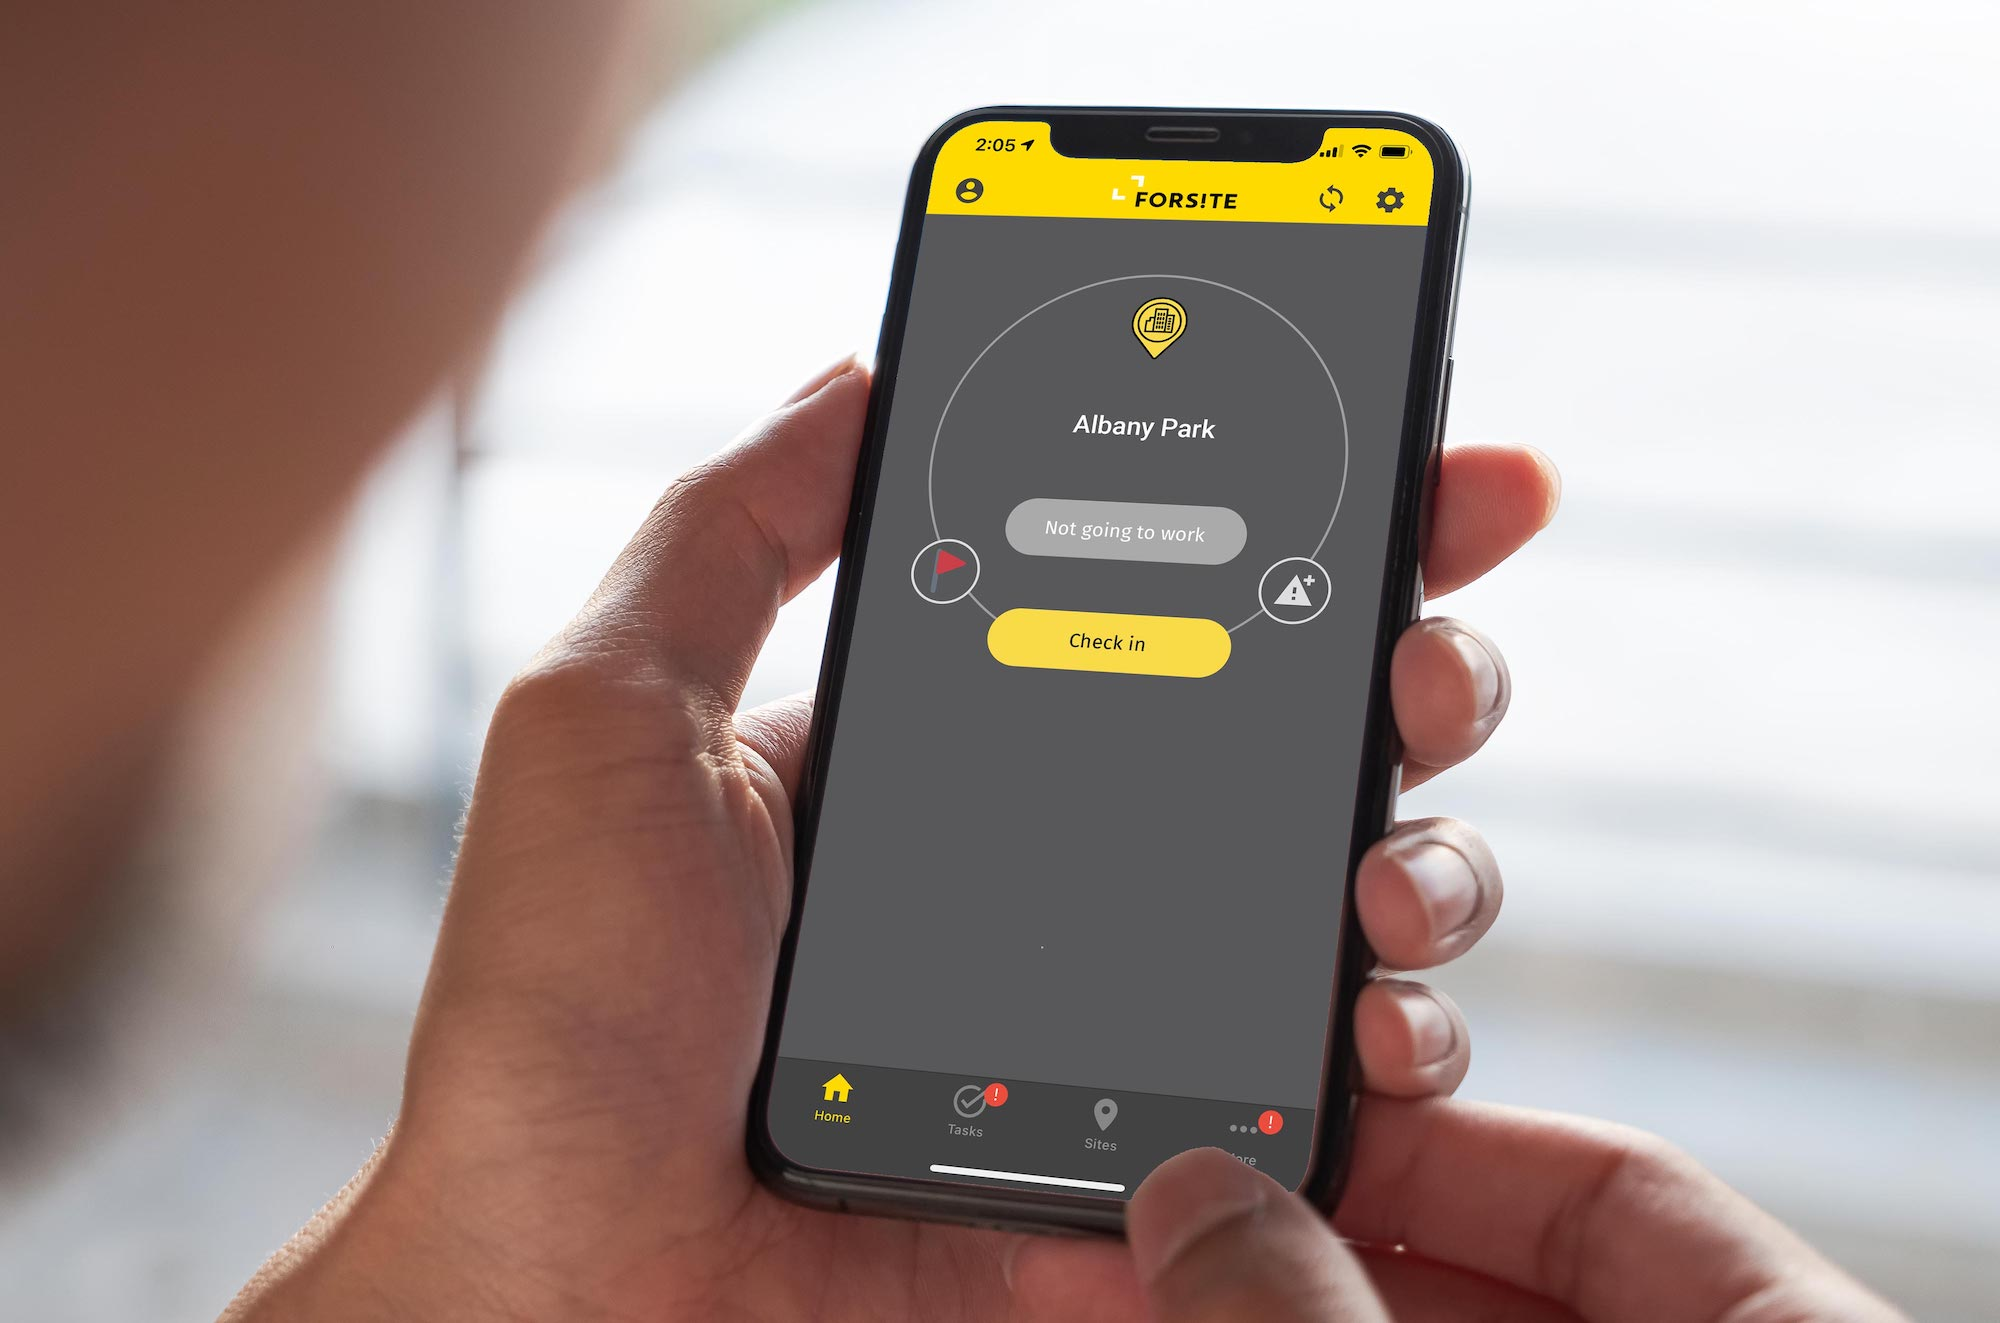 HOUSEBUILDER ADOPTS INNOVATIVE FORSITE TECHNOLOGY IN UK FIRST FOR HOUSEBUILDING SECTOR